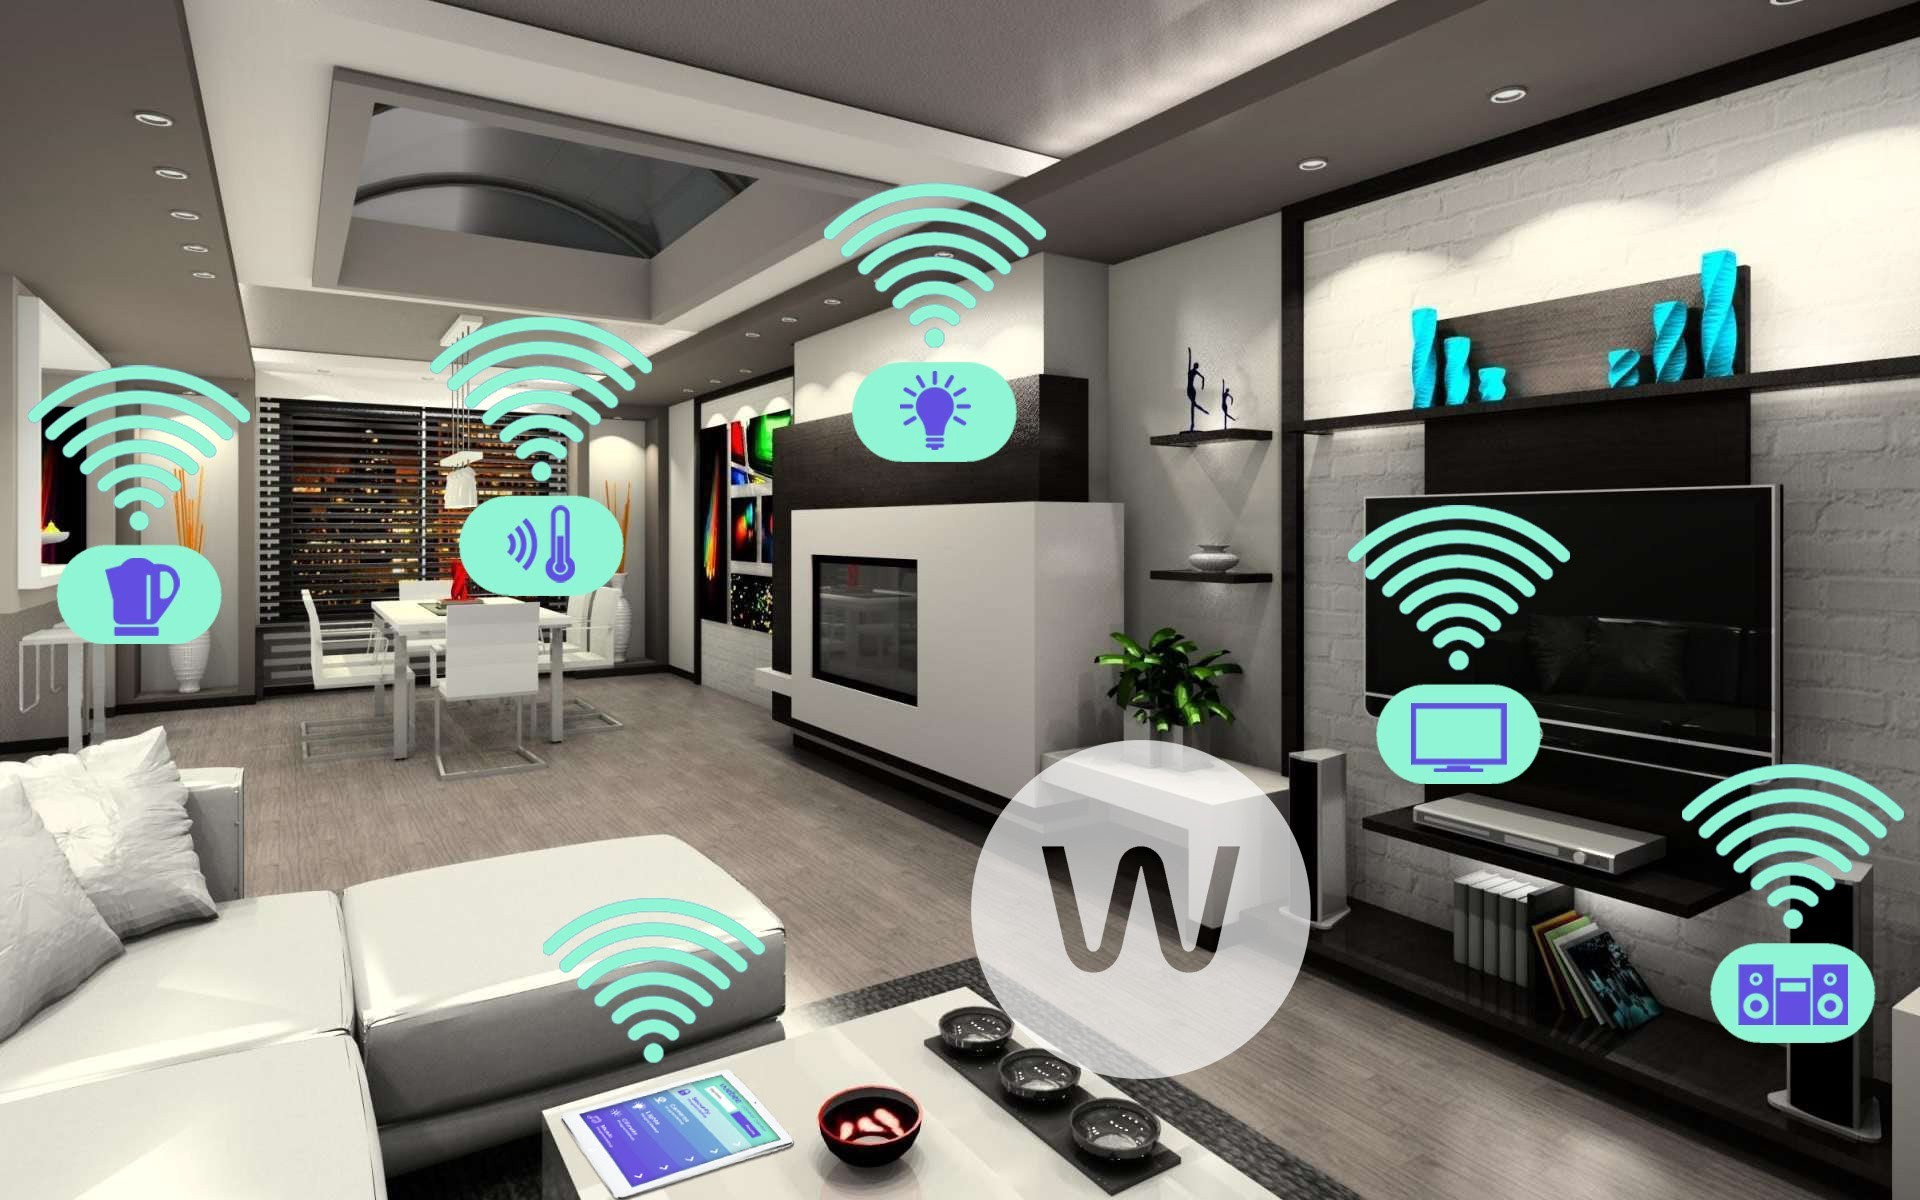 These 17 Smart Home Products Will Make Your Life Better